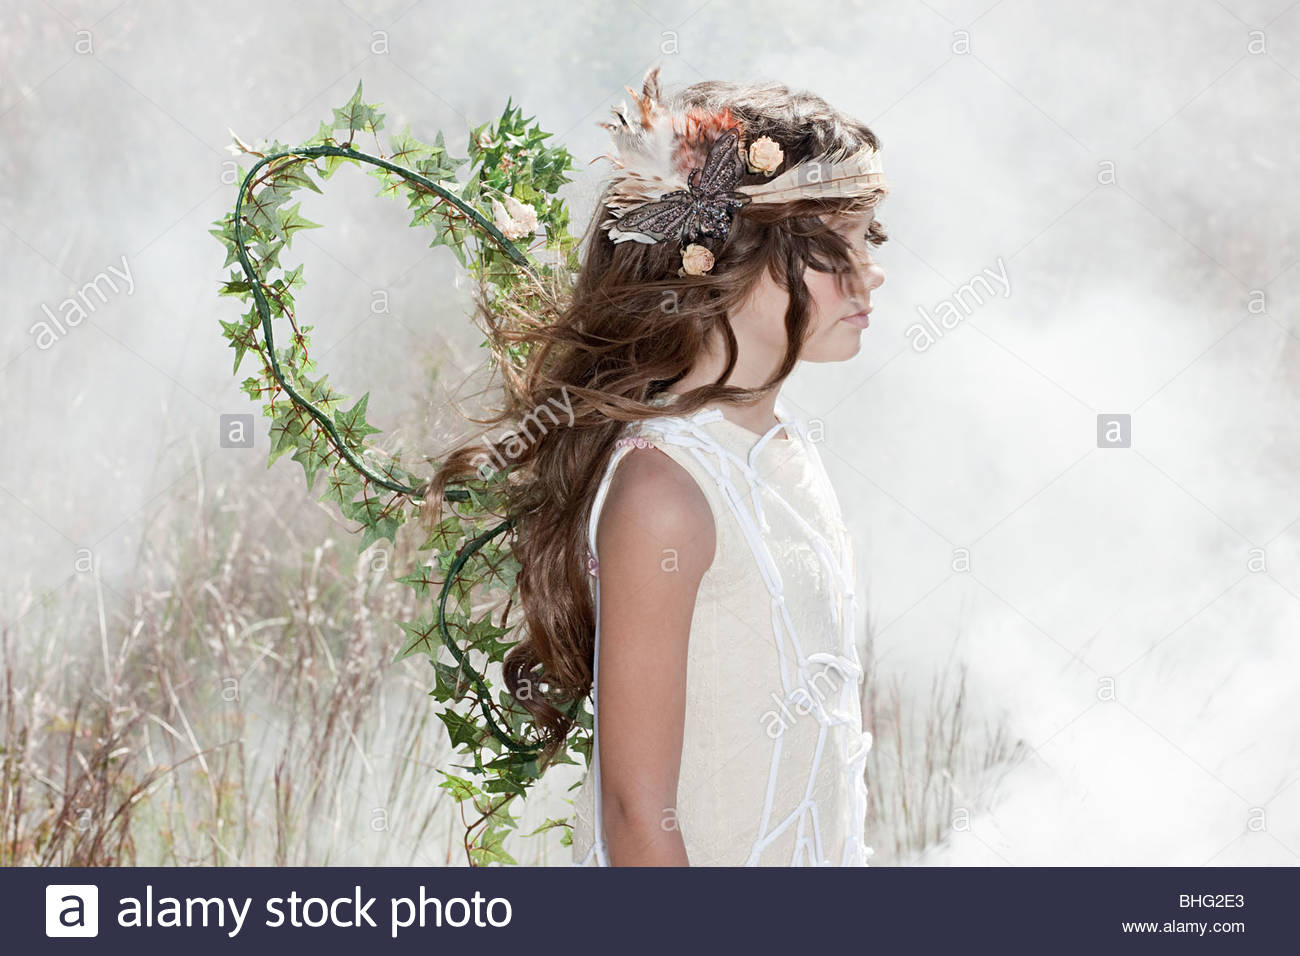 Girl dressed as a fairy - Stock Image